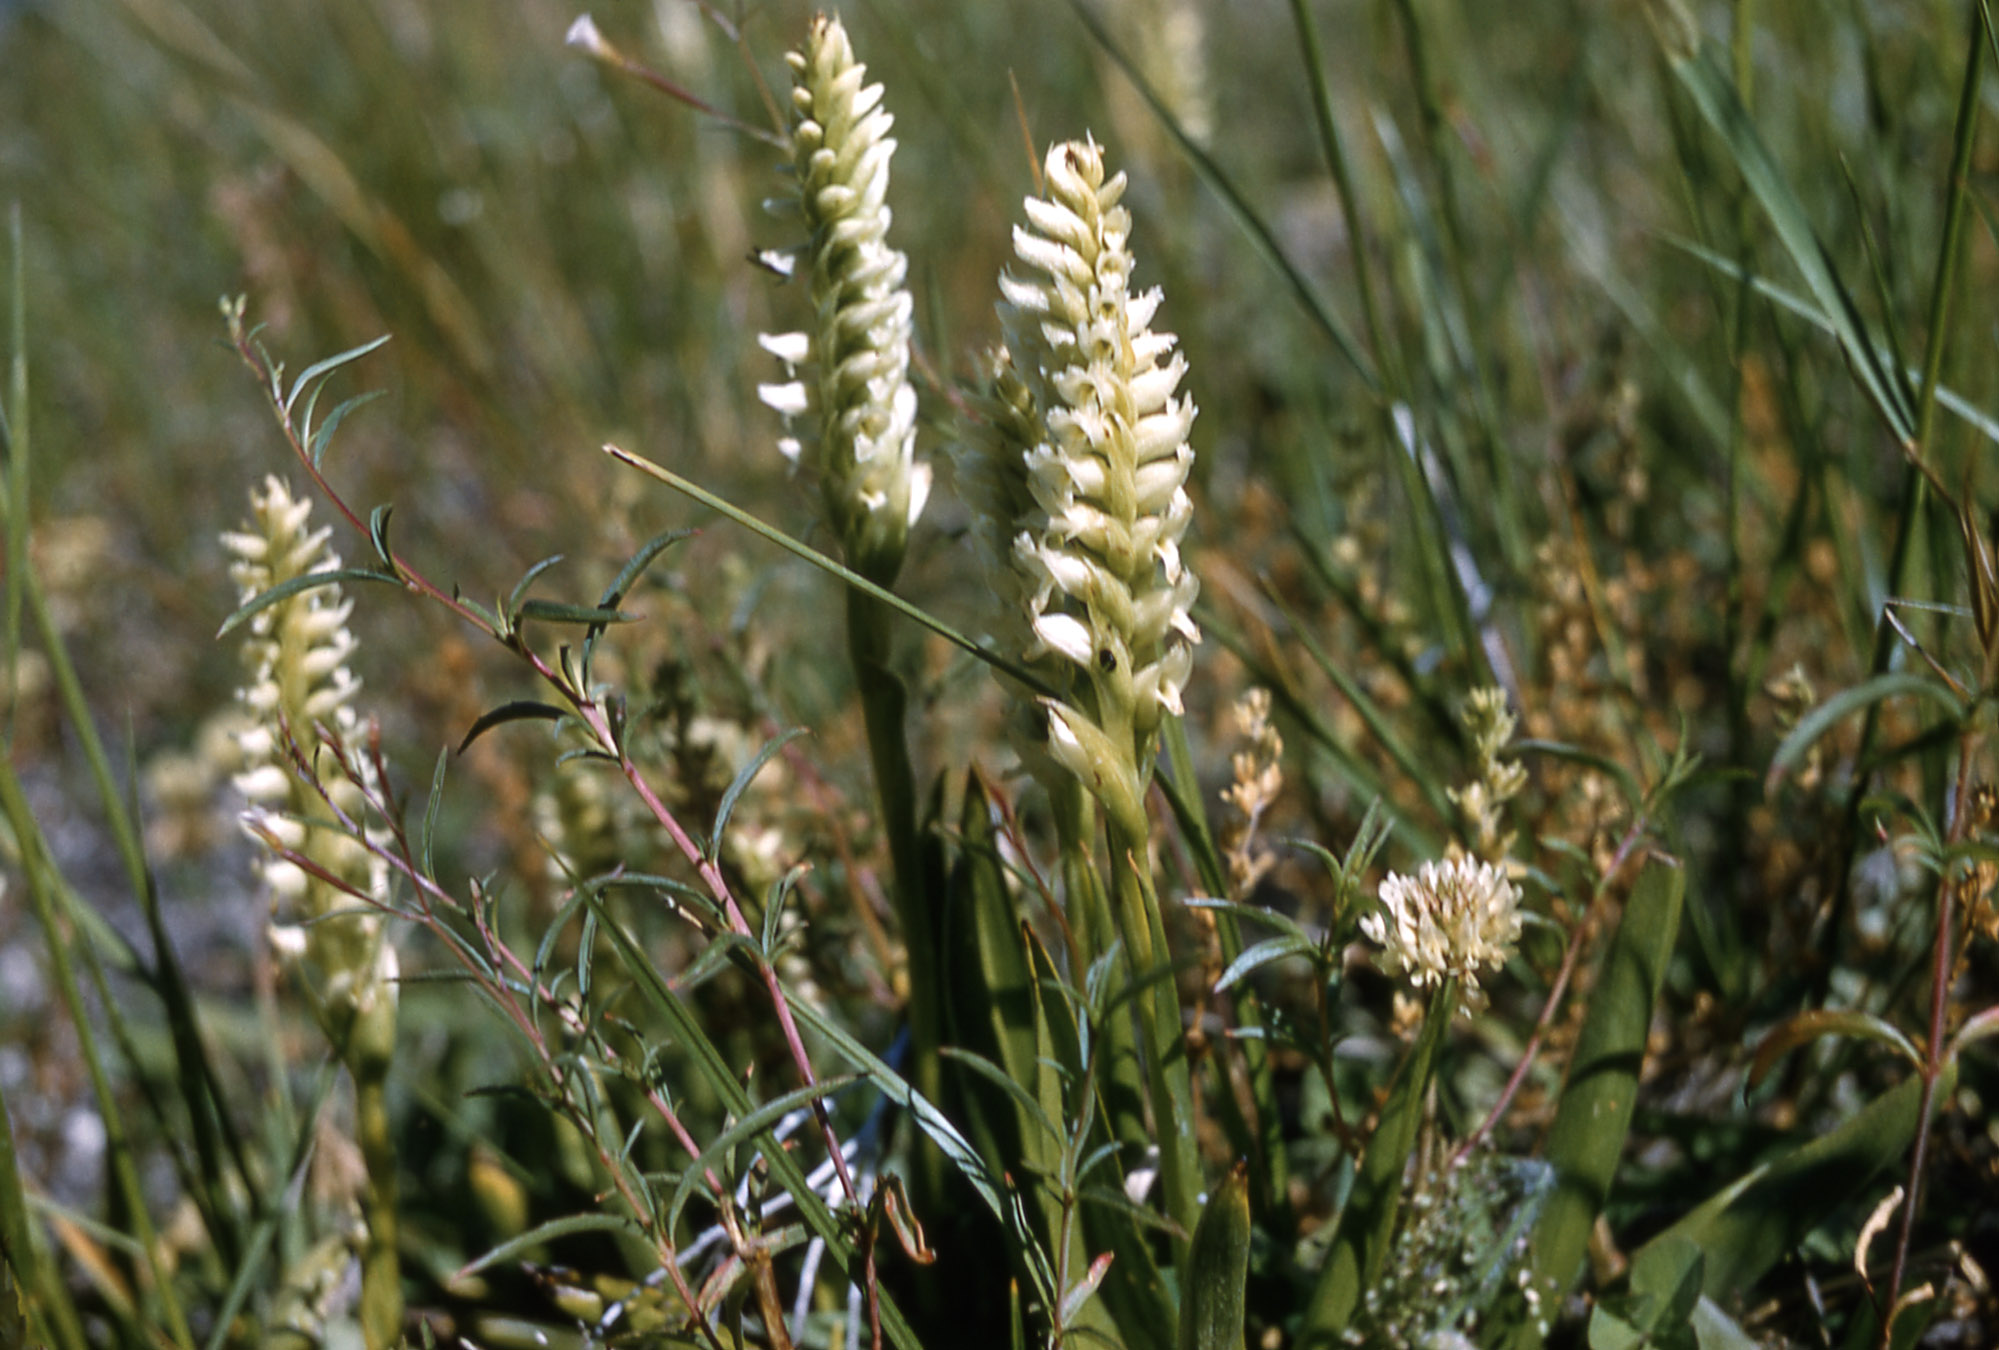 Irish lady's-tresses orchids